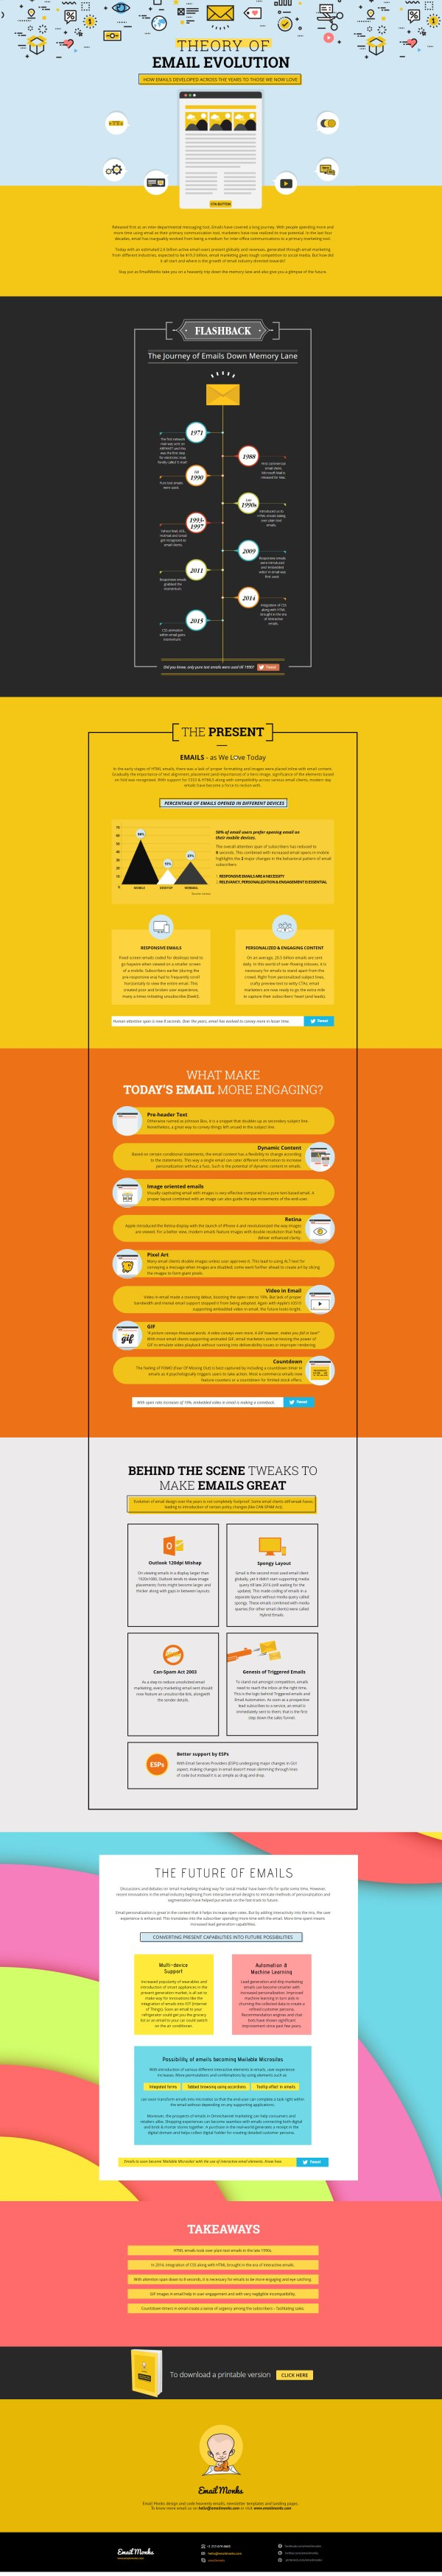 The Theory of Email Evolution [Infographic] - email evolution